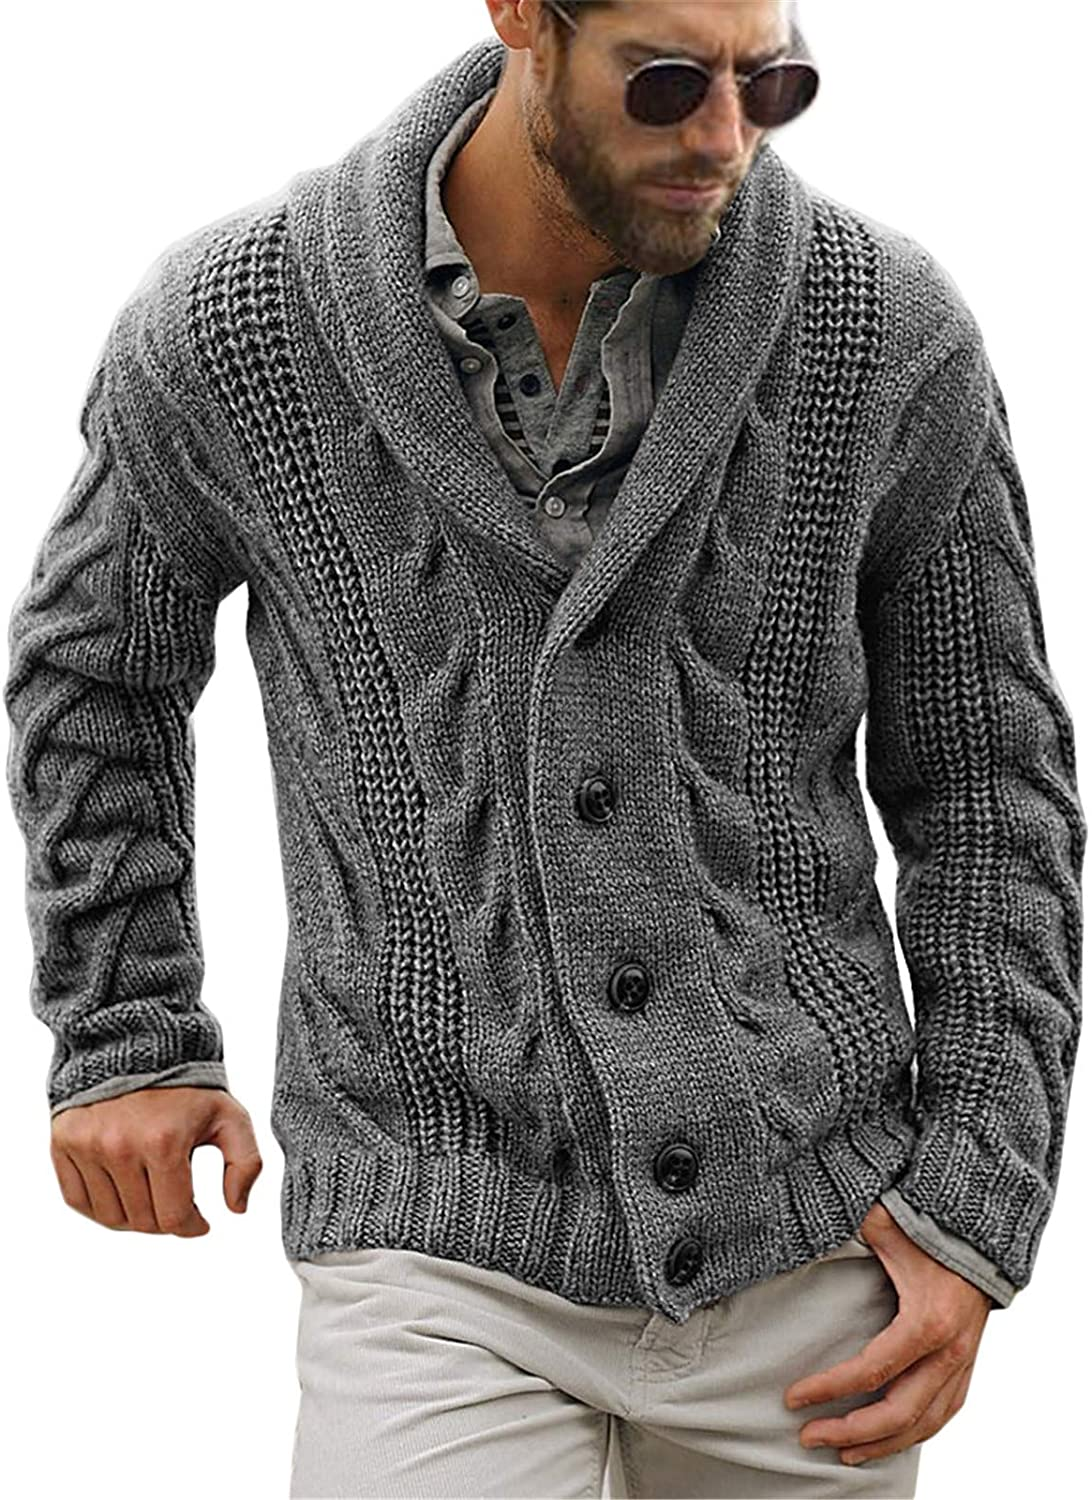 Gafeng Mens Shawl Collar Cable Closure Button OFFicial store Casual Rib Austin Mall Knitted